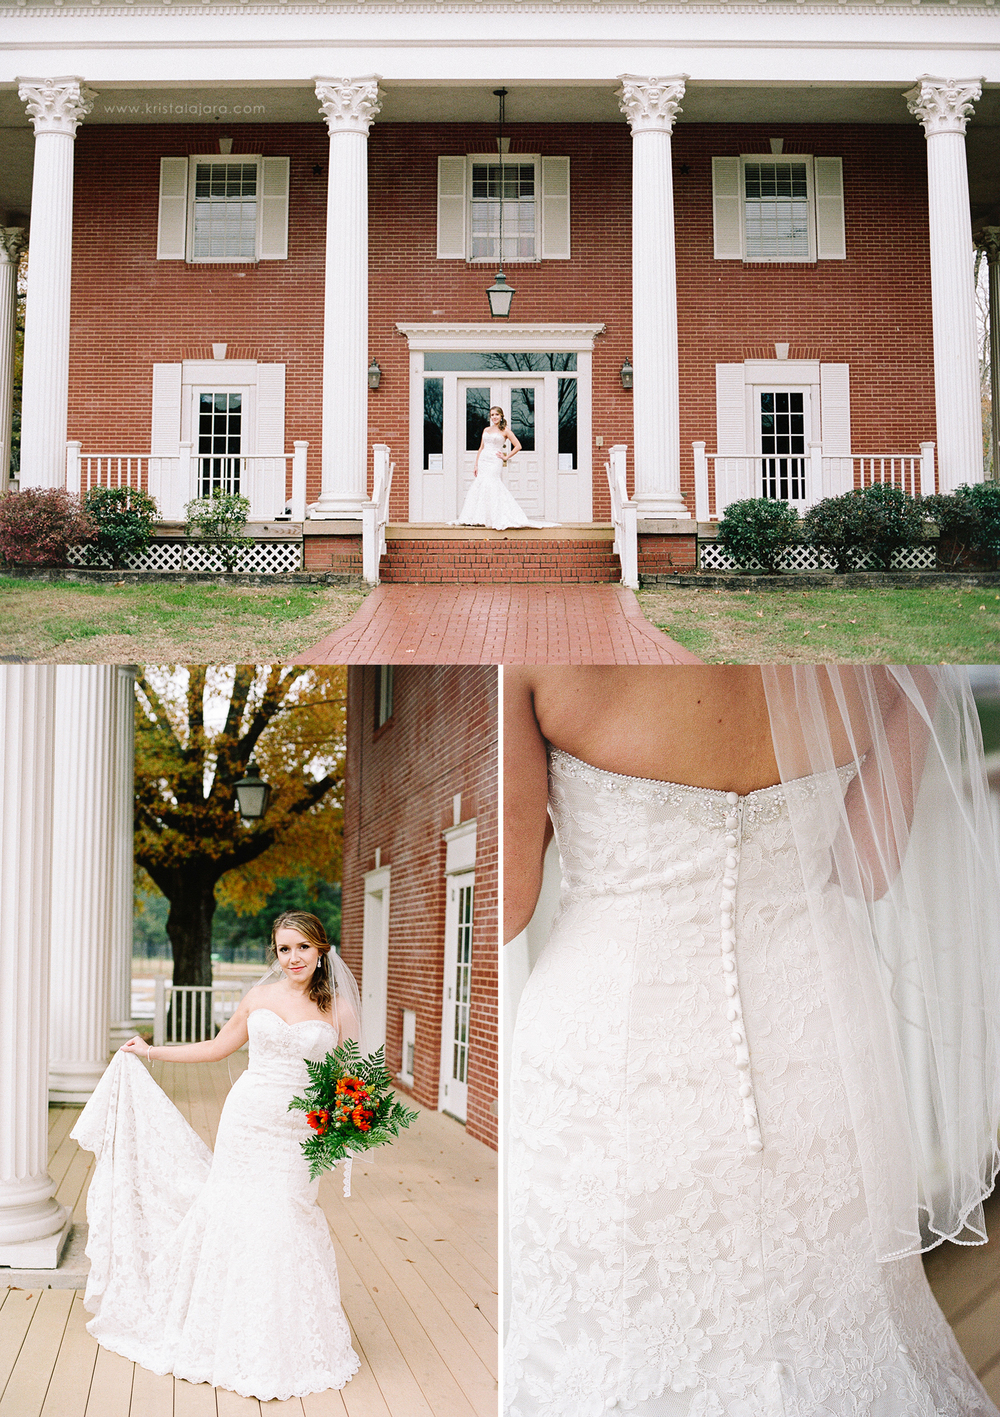 Chattanooga, TN Bridal Session | www.kristalajara.com